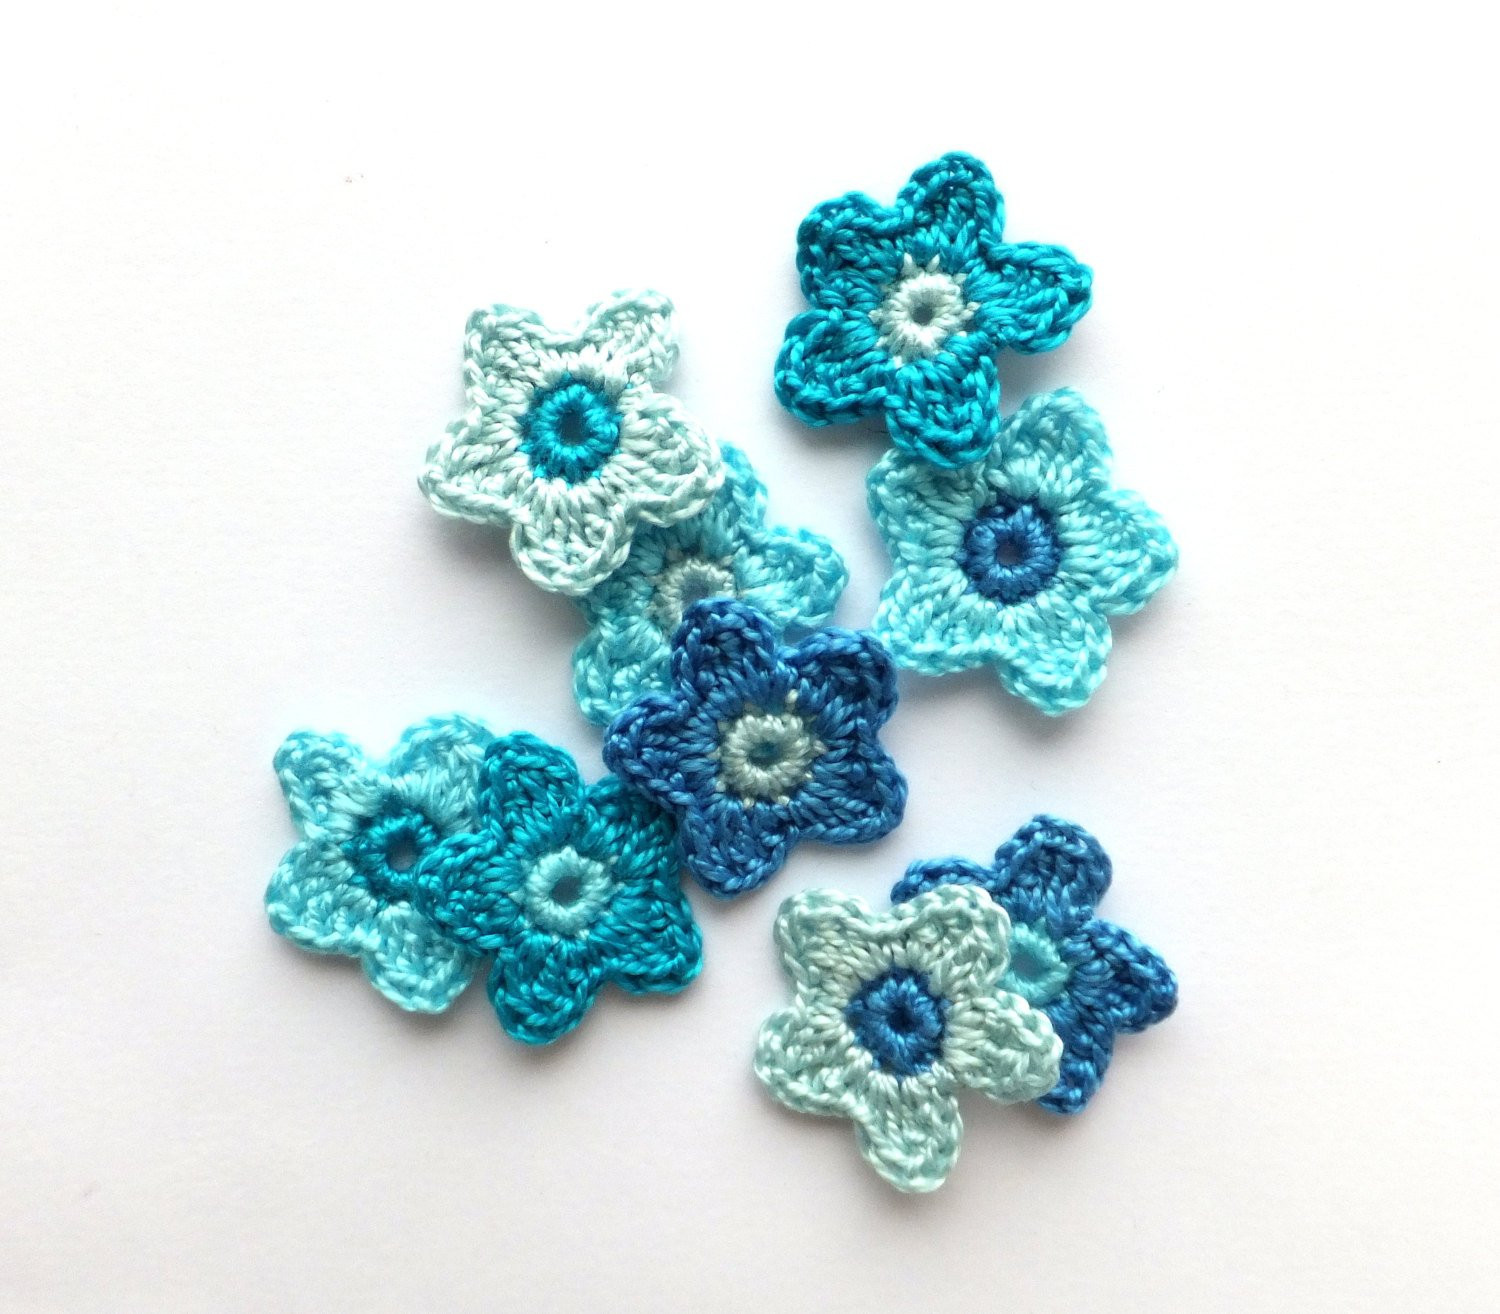 Crochet Small Flower Awesome Crochet Flowers Applique Small Flower Embellishments Of Luxury 50 Pictures Crochet Small Flower